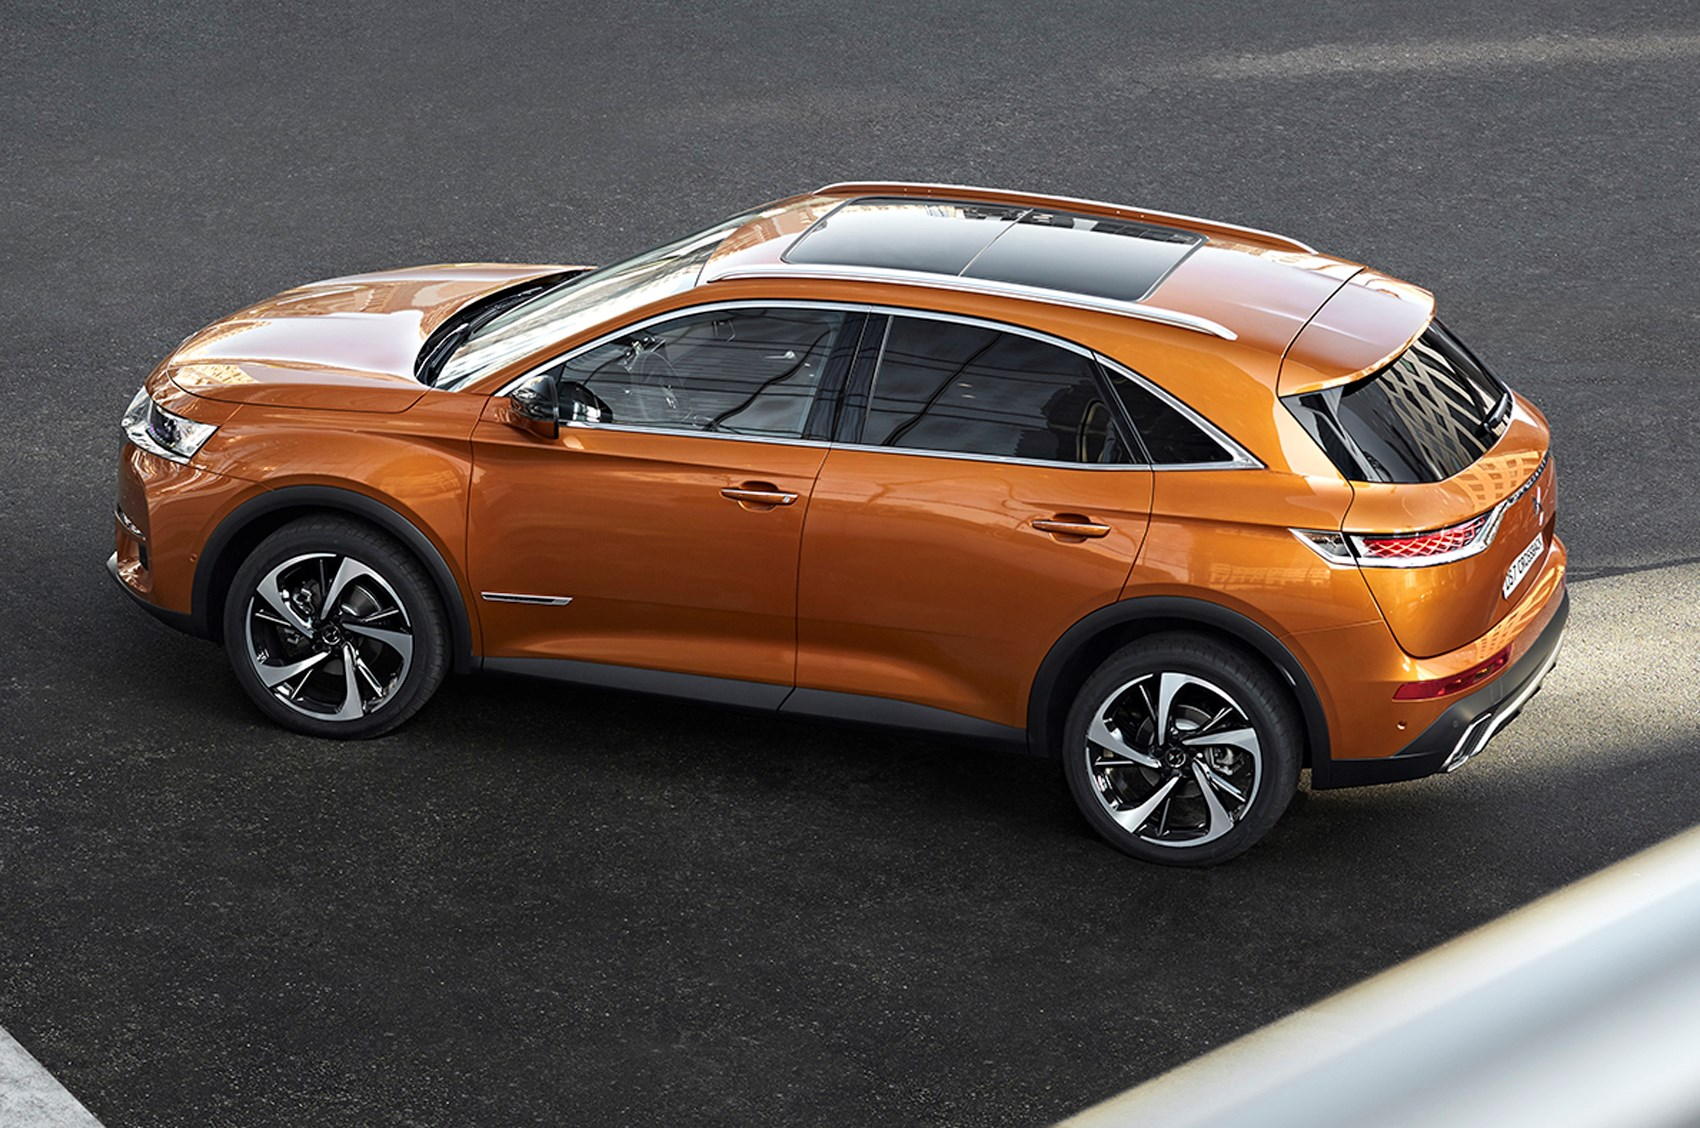 DS 7 Crossback (2021) top view